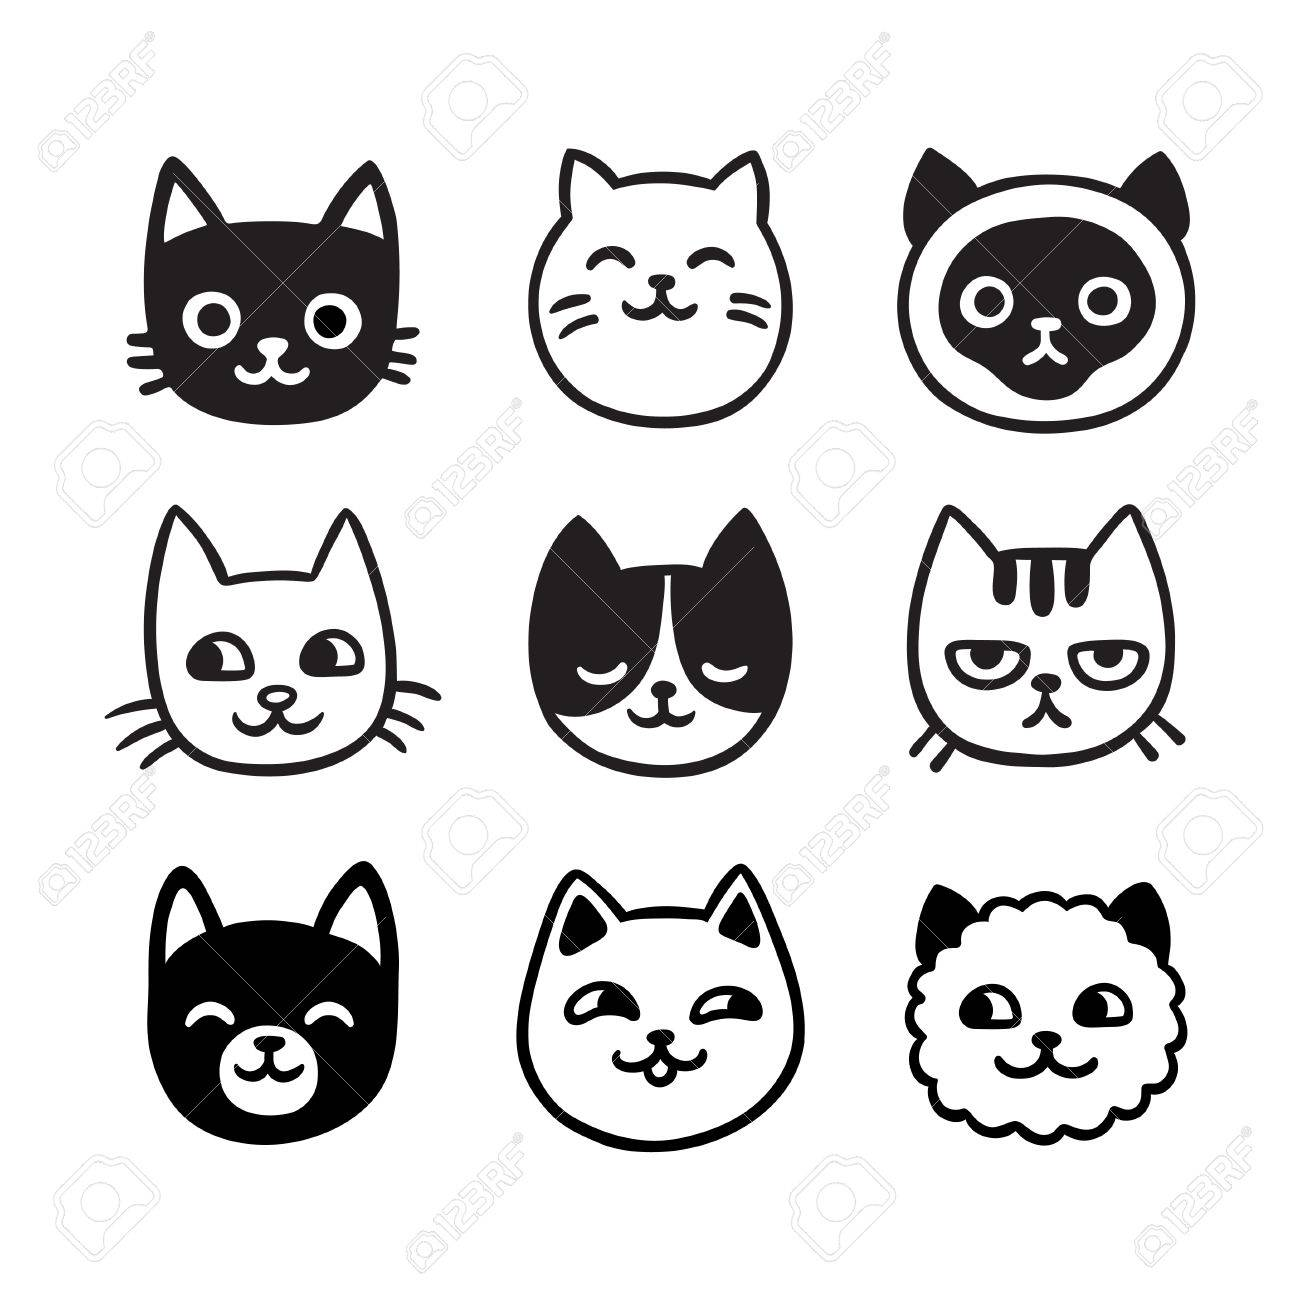 Cute Cartoon Cat Doodle Set Funny Vector Icons Hand Drawn Sketch